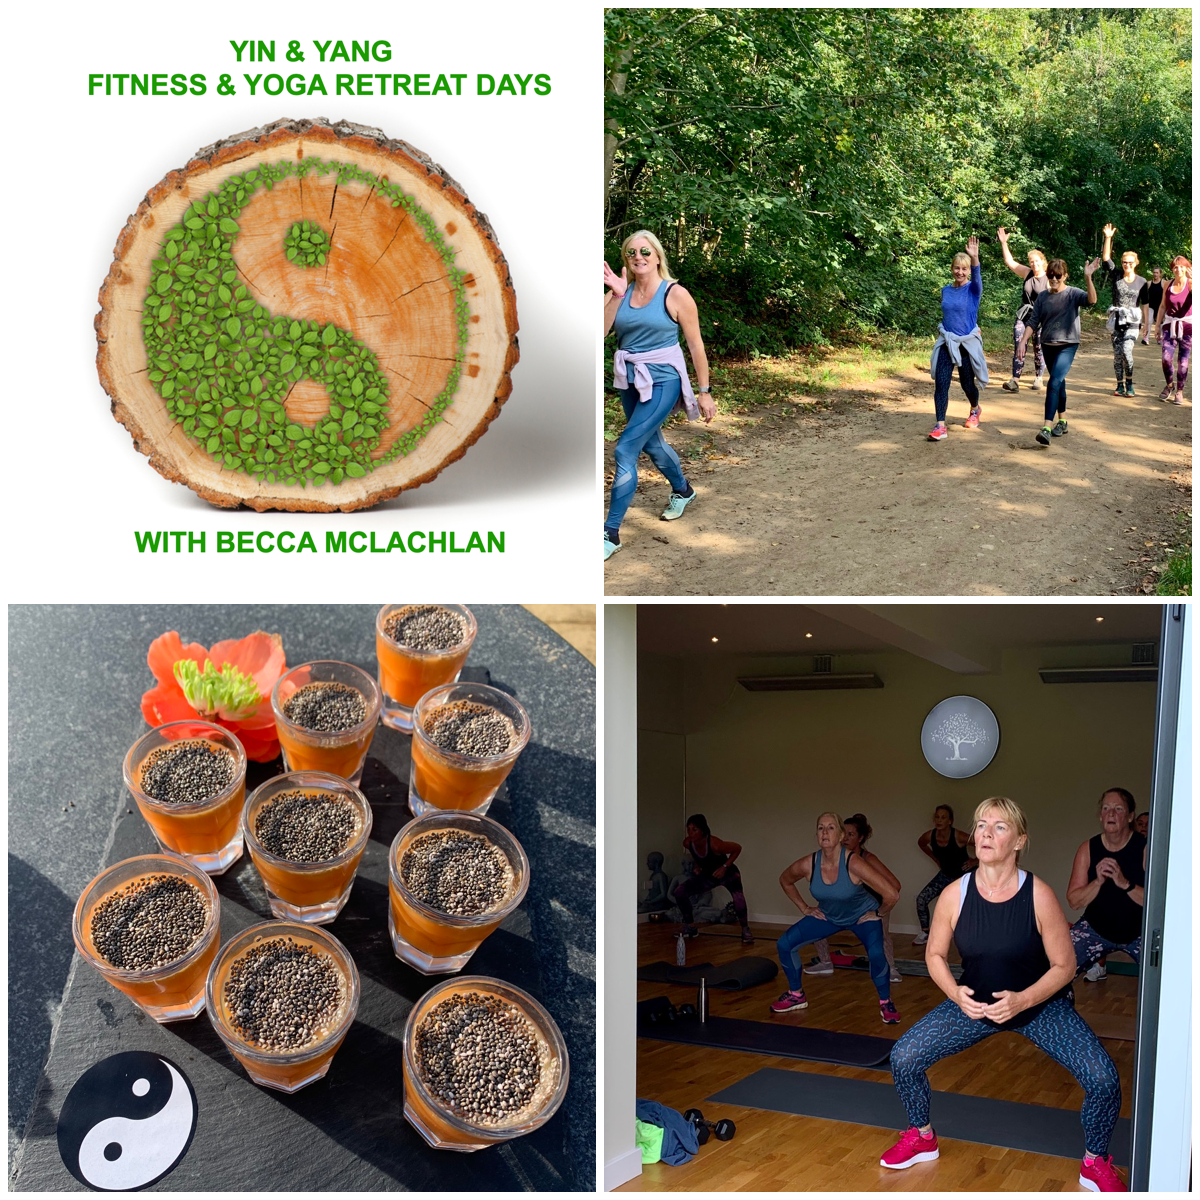 Yin & Yang Fitness & Yoga Small Group Retreat Day - (FULLY BOOKED - email becca@becca-mclachlan.com to be added to the cancellation list)